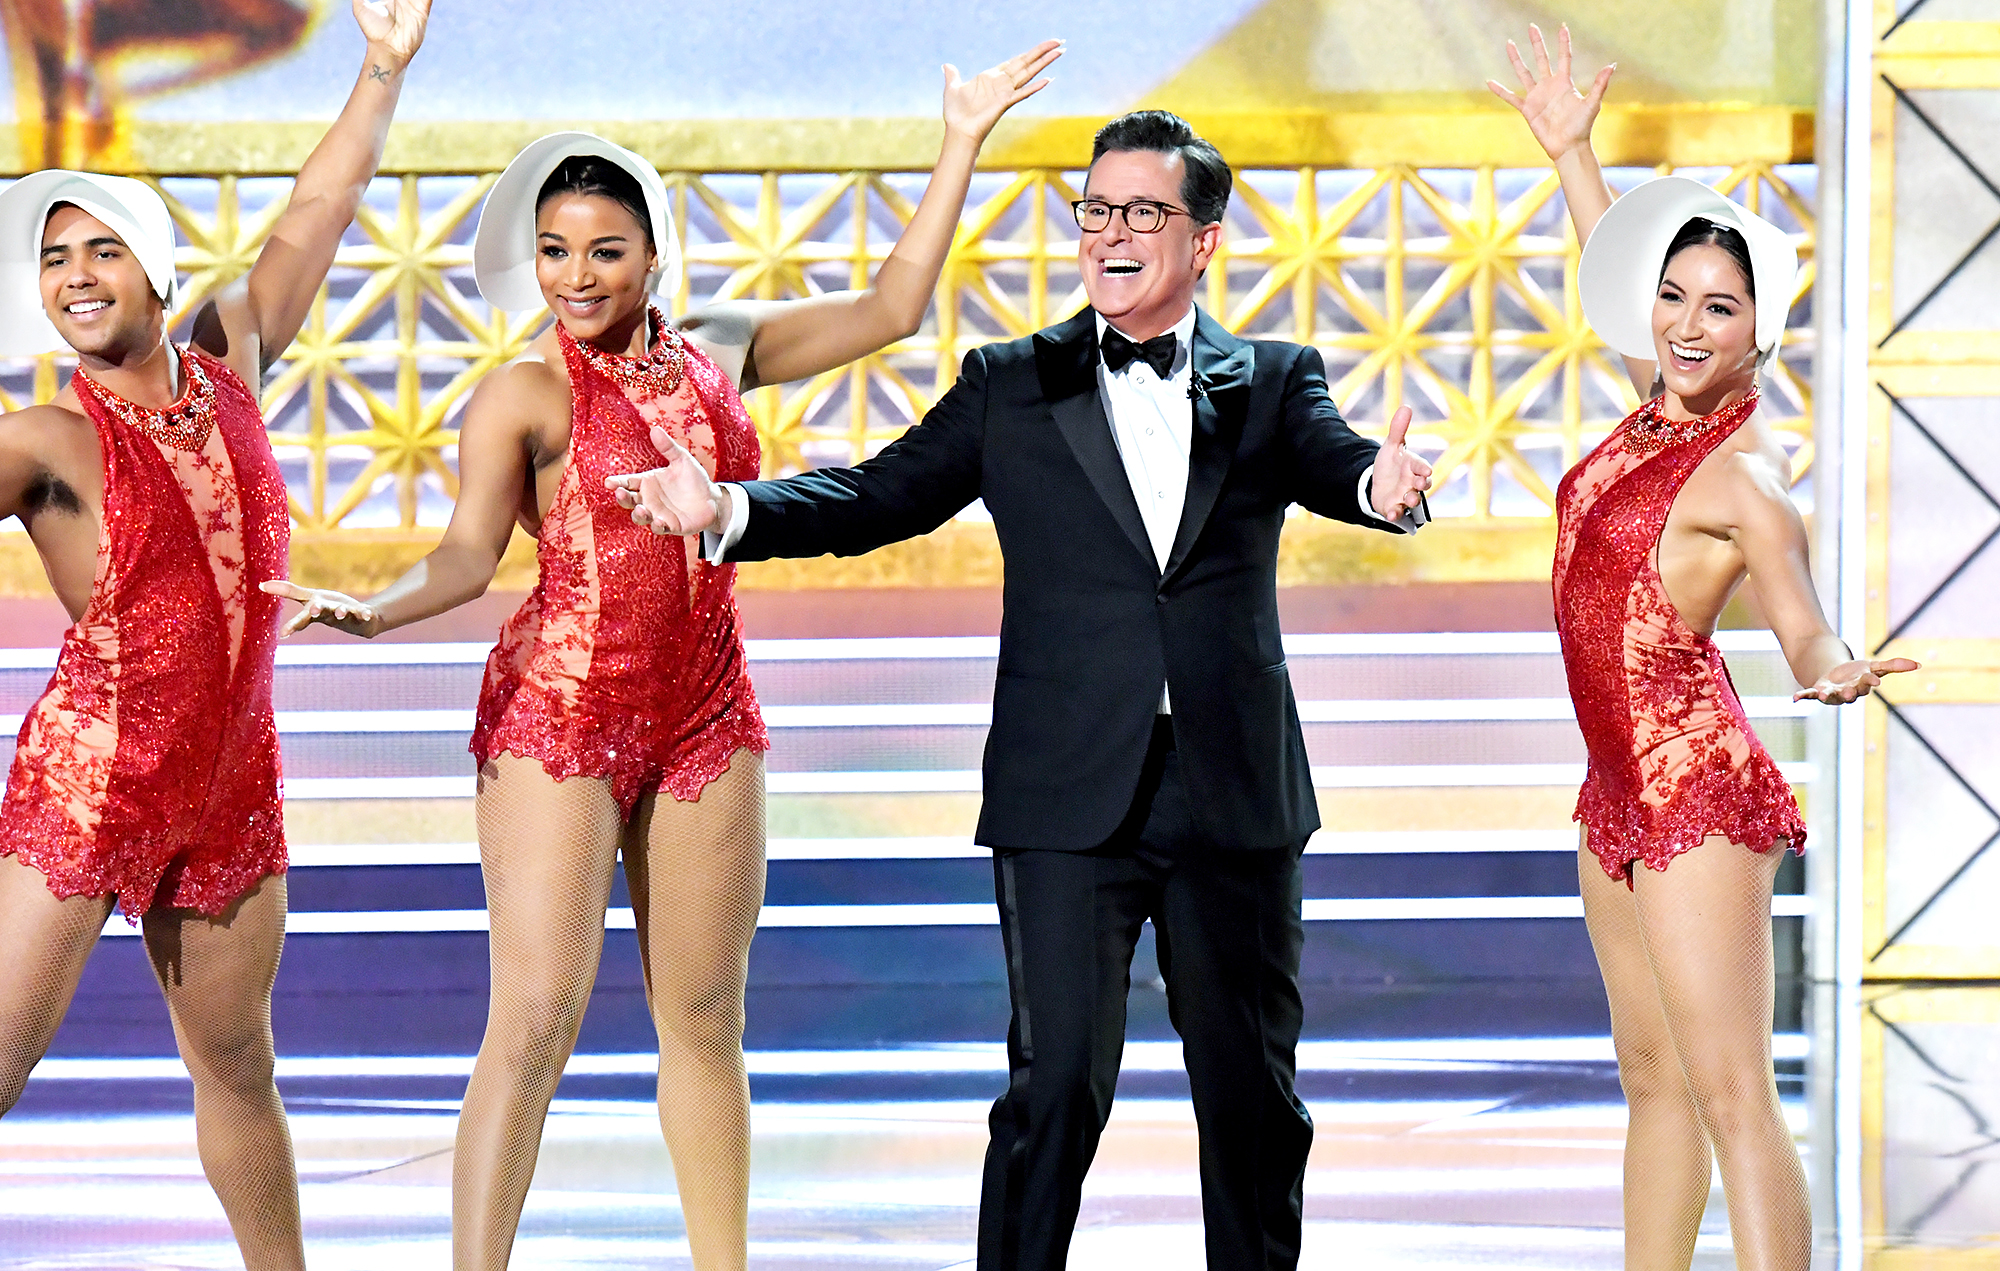 Stephen Colbert Emmys Awards Host 2017 - Host Stephen Colbert (2nd from R) performs onstage during the 69th Annual Primetime Emmy Awards at Microsoft Theater on September 17, 2017 in Los Angeles, California.